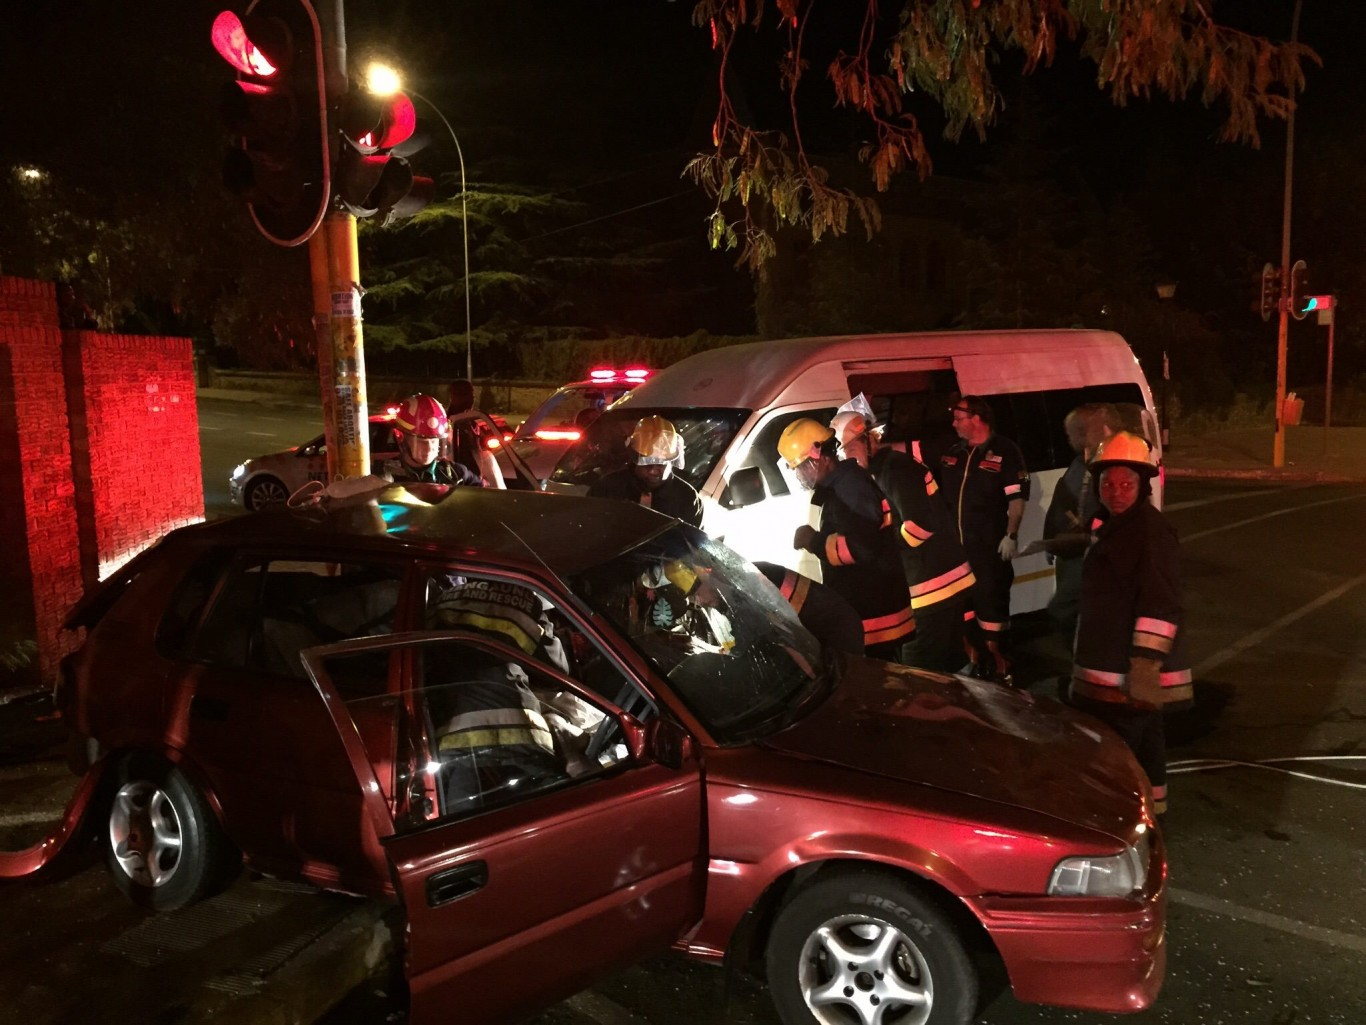 Four injured in collision at intersection in Bloemfontein CBD